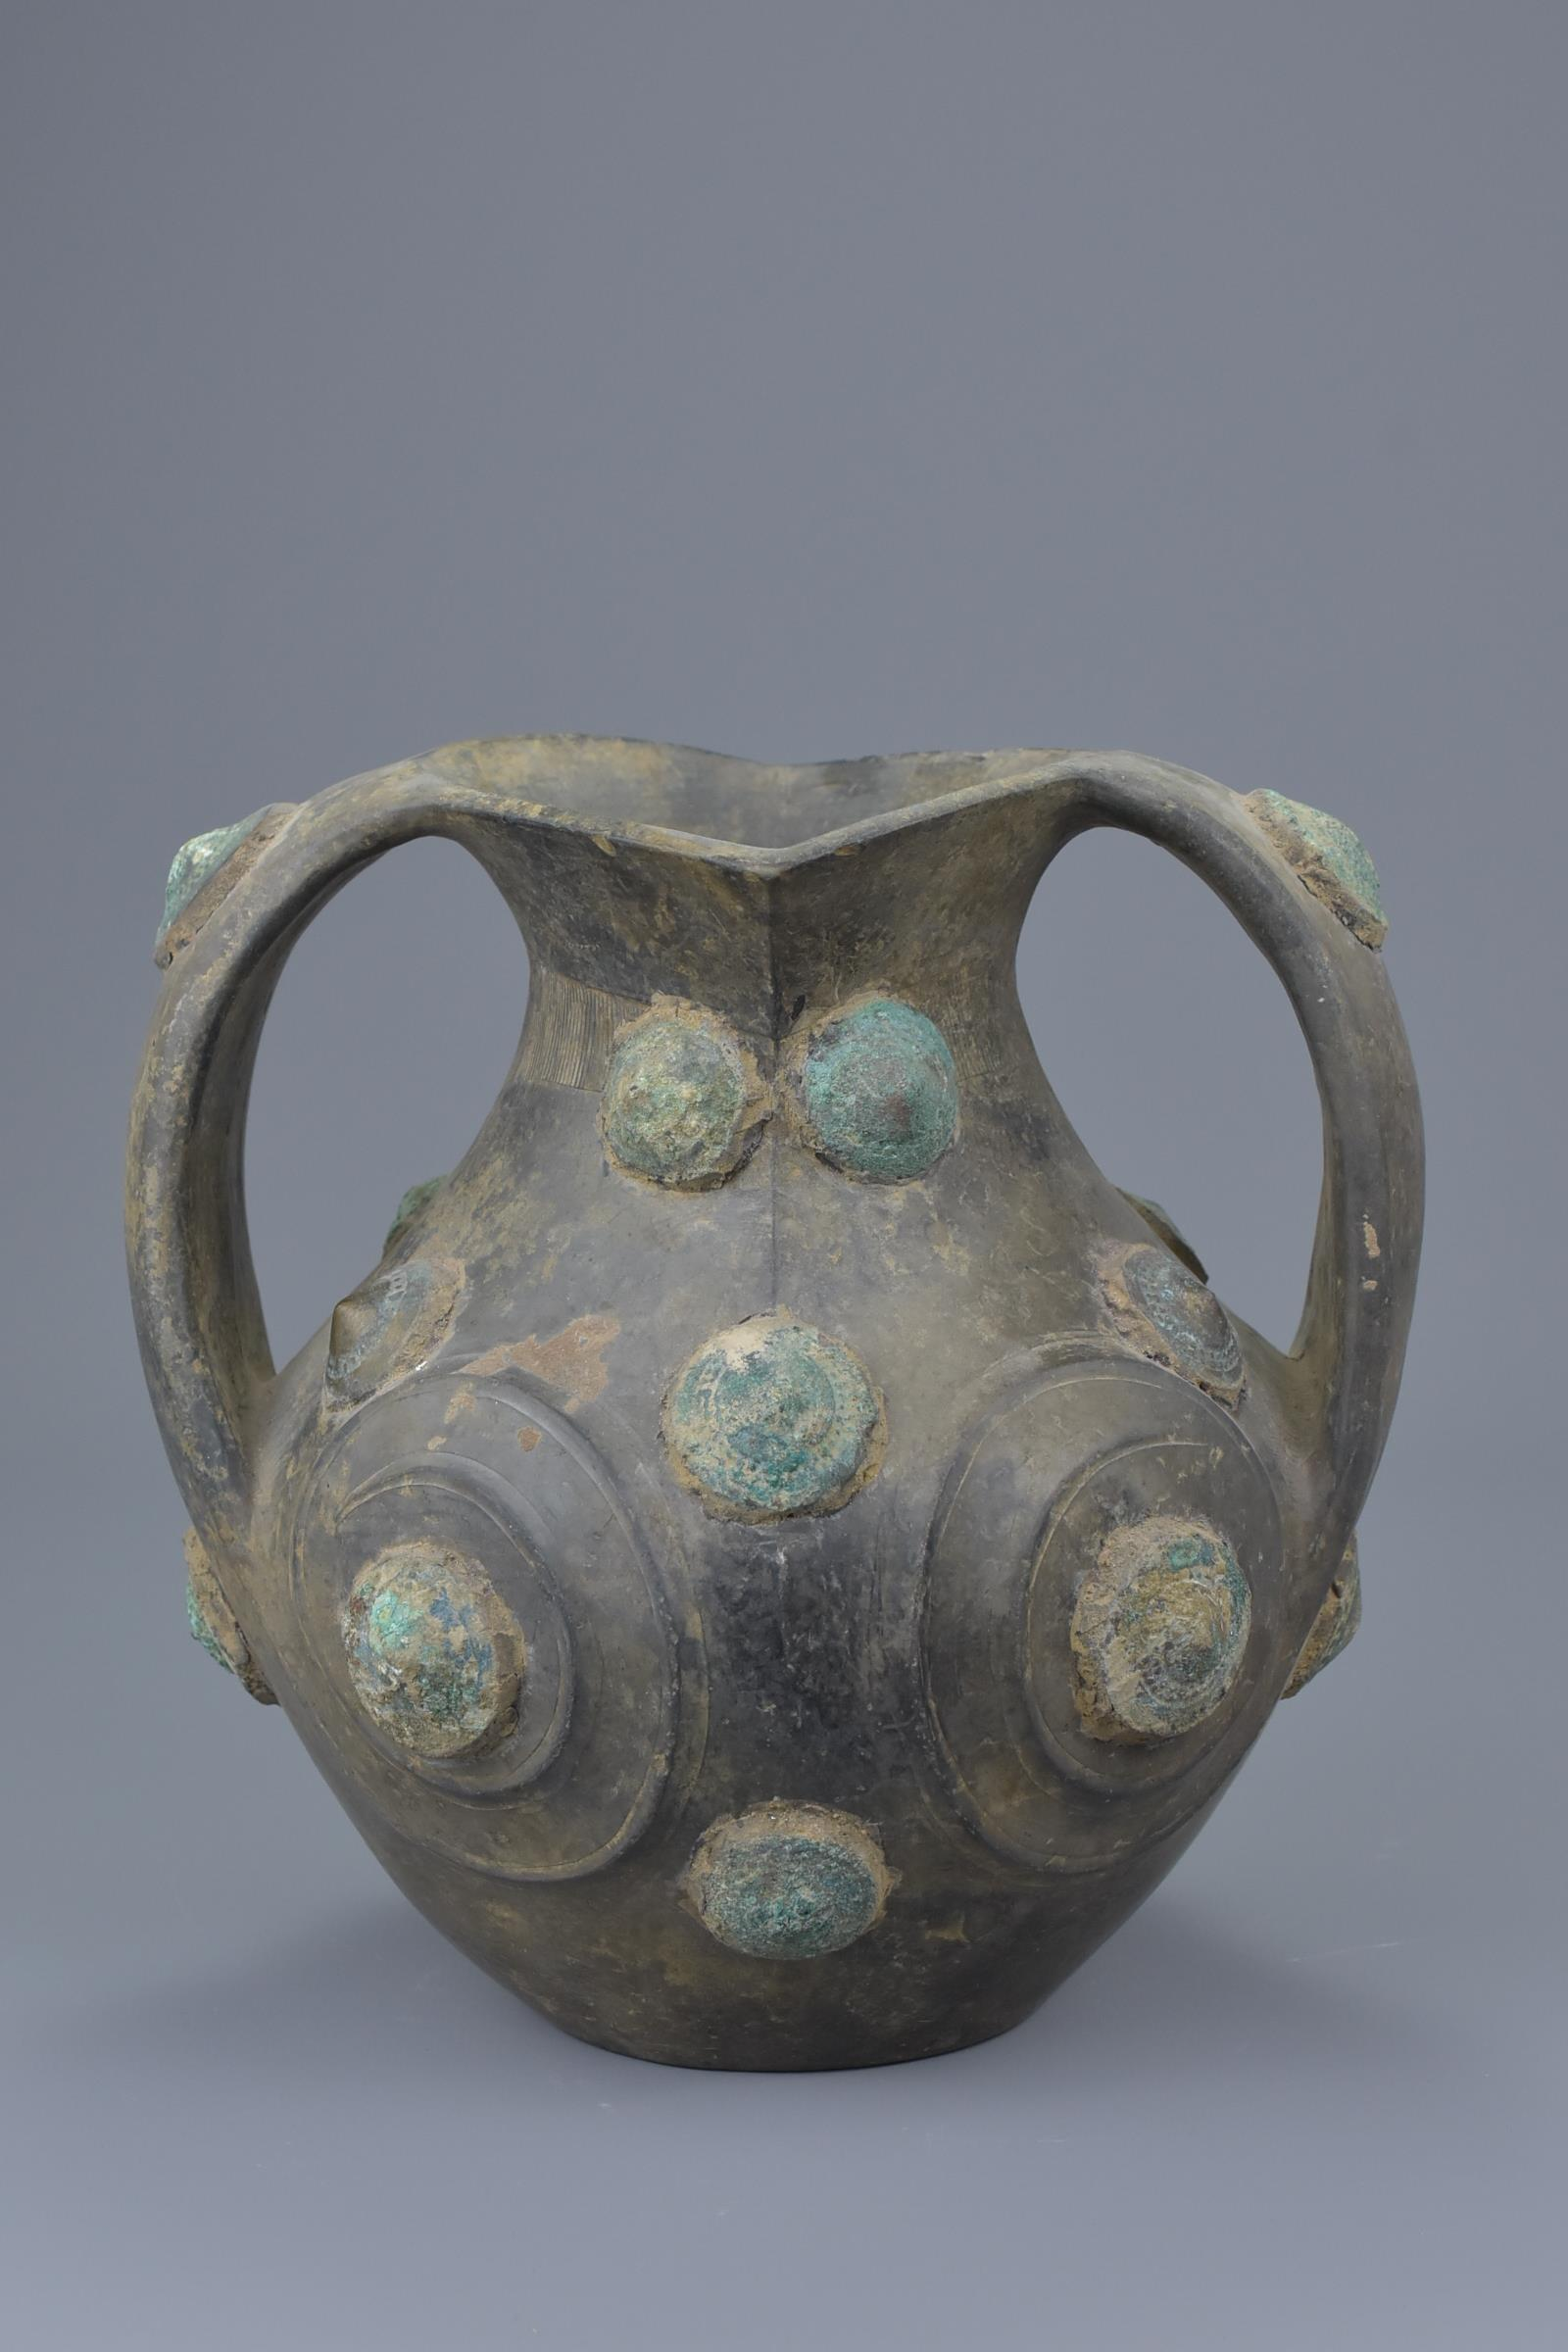 Lot 52 - A Chinese Han Dynasty Black Pottery Amphora with Bronze Appliqués